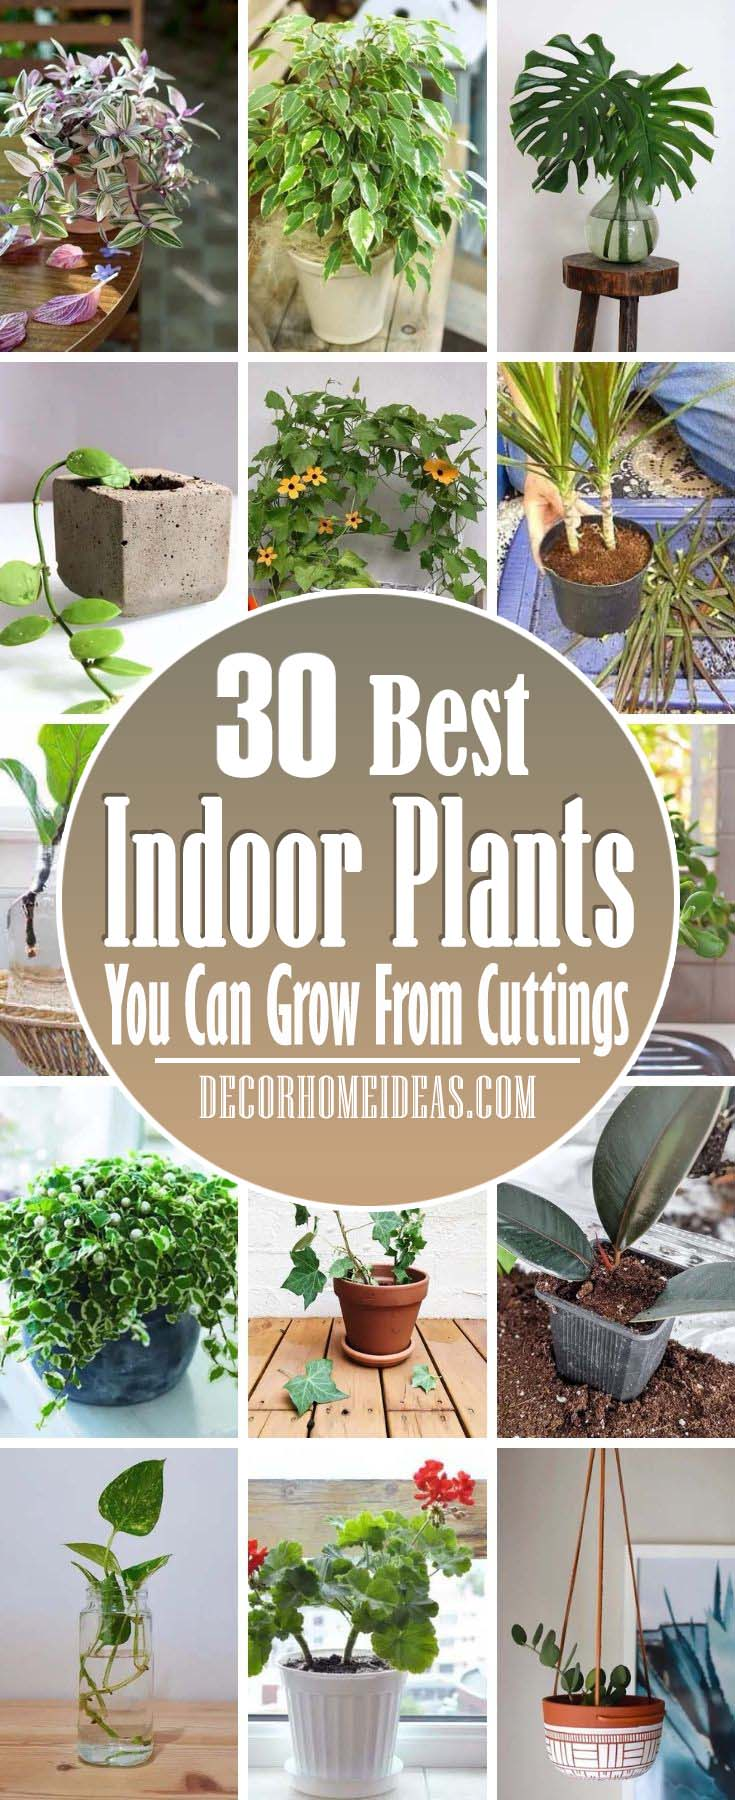 Best Indoor Plants From Cuttings. Indoor plants can be expensive but with some basic materials and know-how, you can grow them for free from simple cuttings. #decorhomeideas